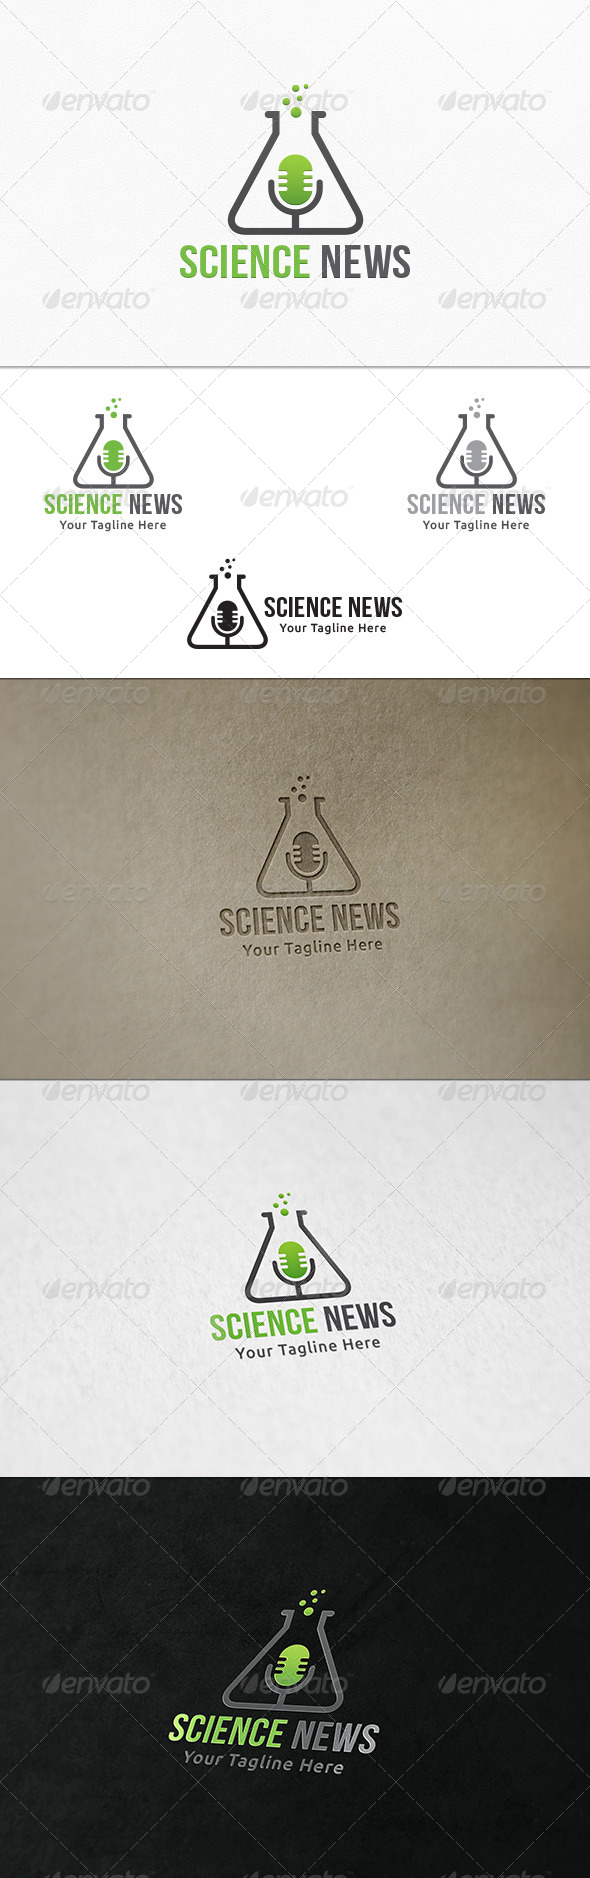 GraphicRiver Science News Logo Template 8196423